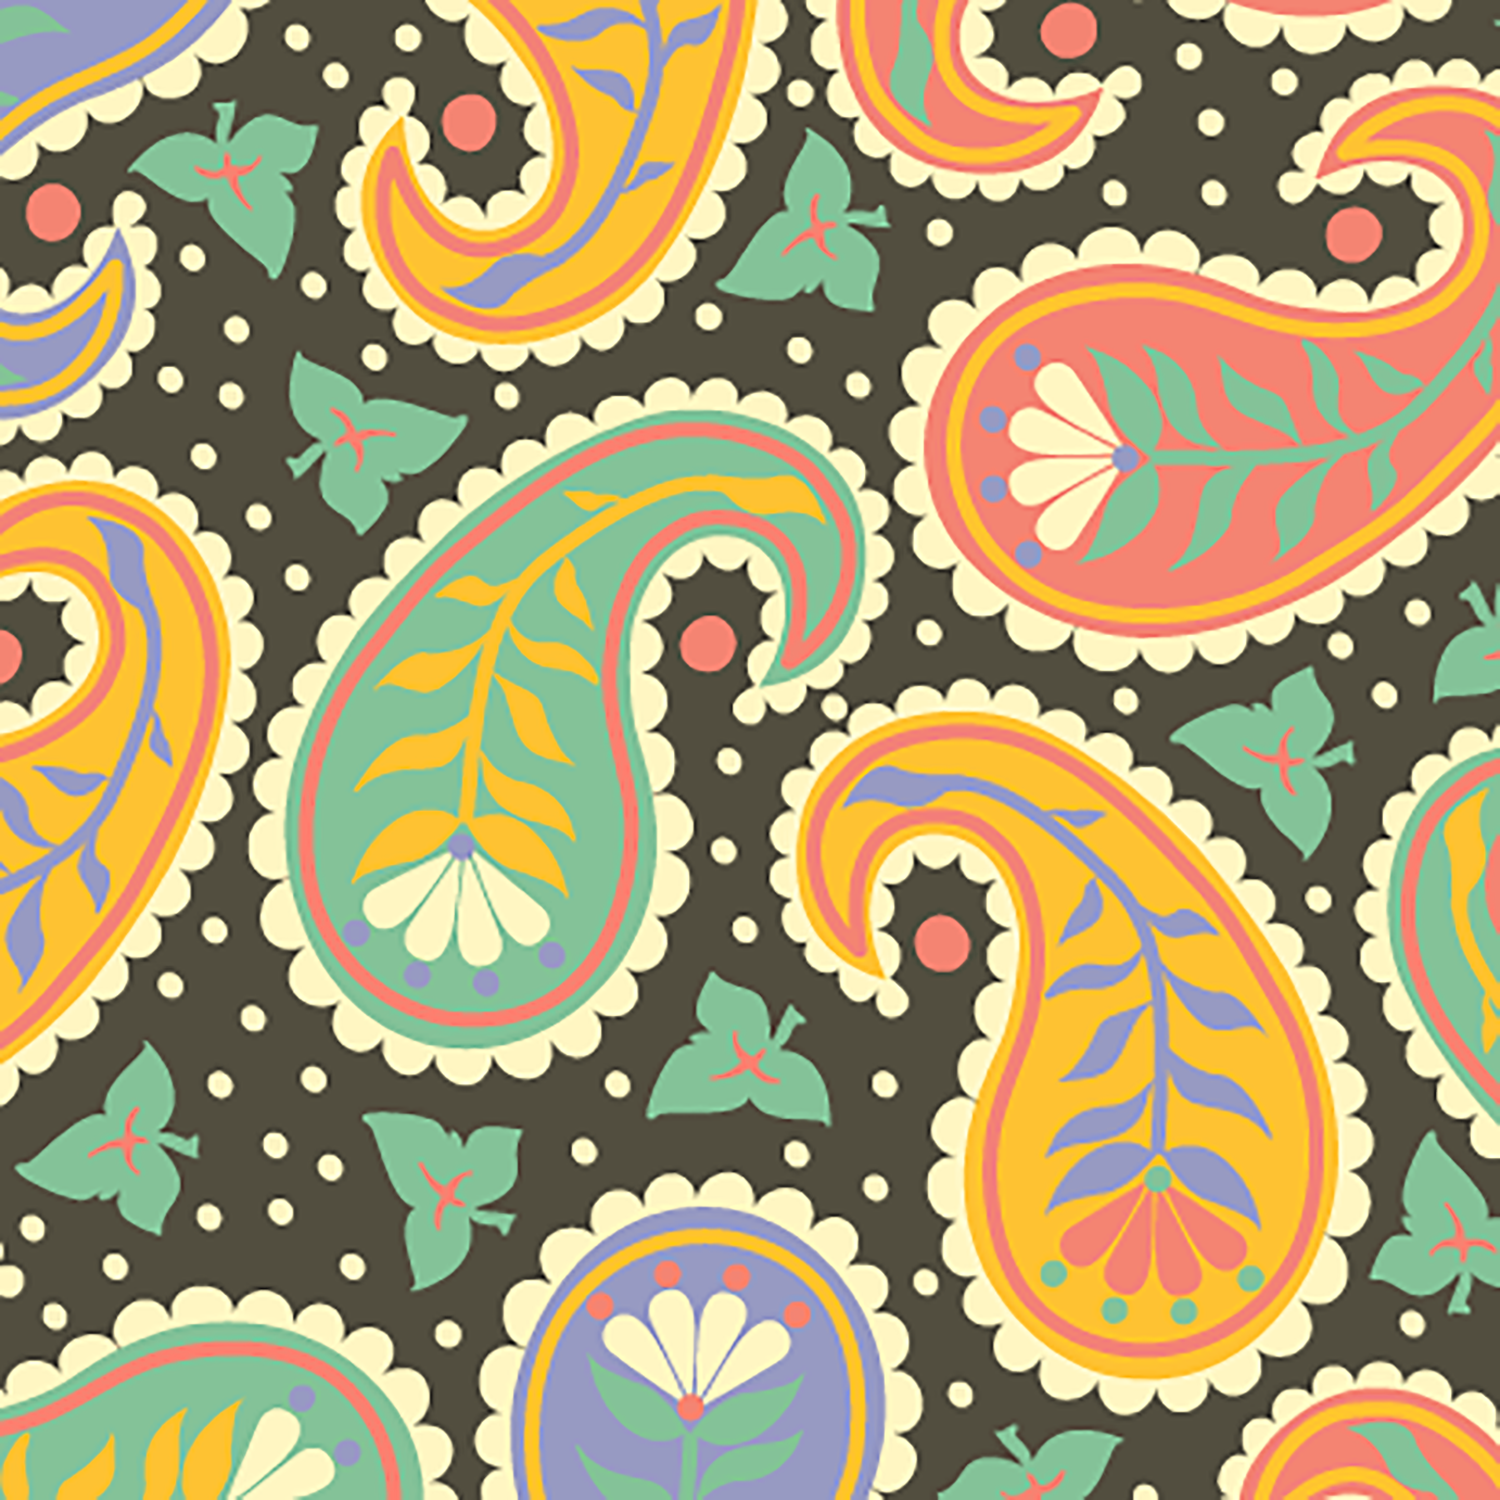 paisley-resize-022417.png